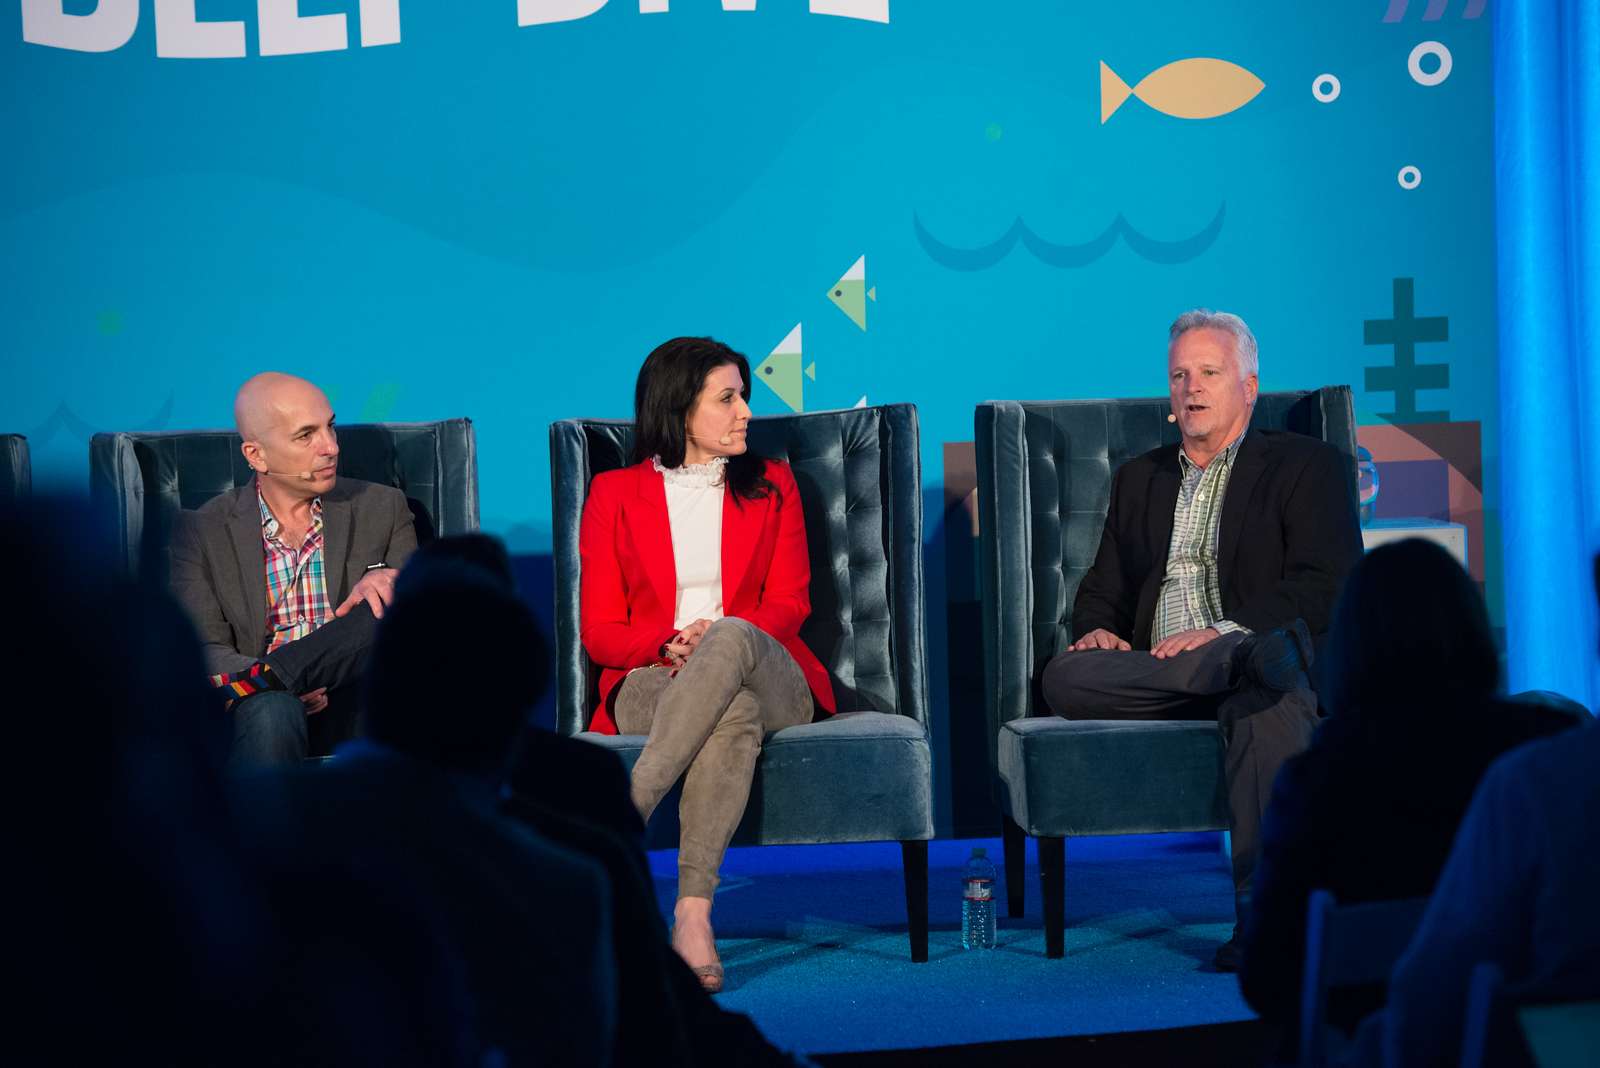 Demystifying AppExchange: 5 Insider Tips for Success Ian Dunckel SENIOR PRODUCT MARKETING MANAGER / SALESFORCE  Gadi Shamia COO / TALKDESK  Amanda Kahlow FOUNDER & CEO / 6SENSE Ray Hein FOUNDER & CEO / PROPEL